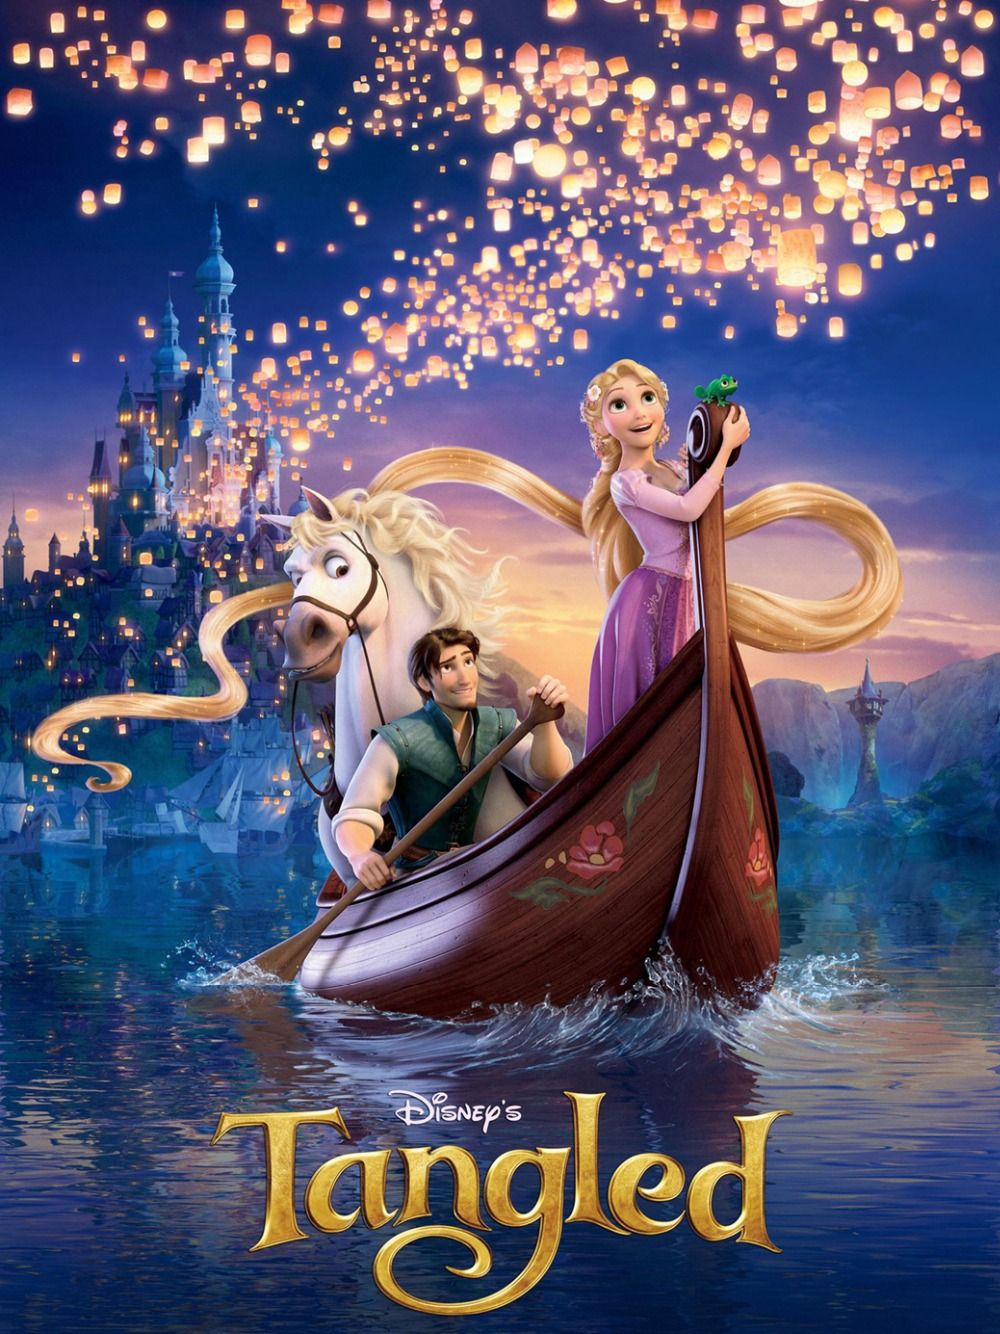 Disney's Tangled (2010)submitted by Carisa, who says